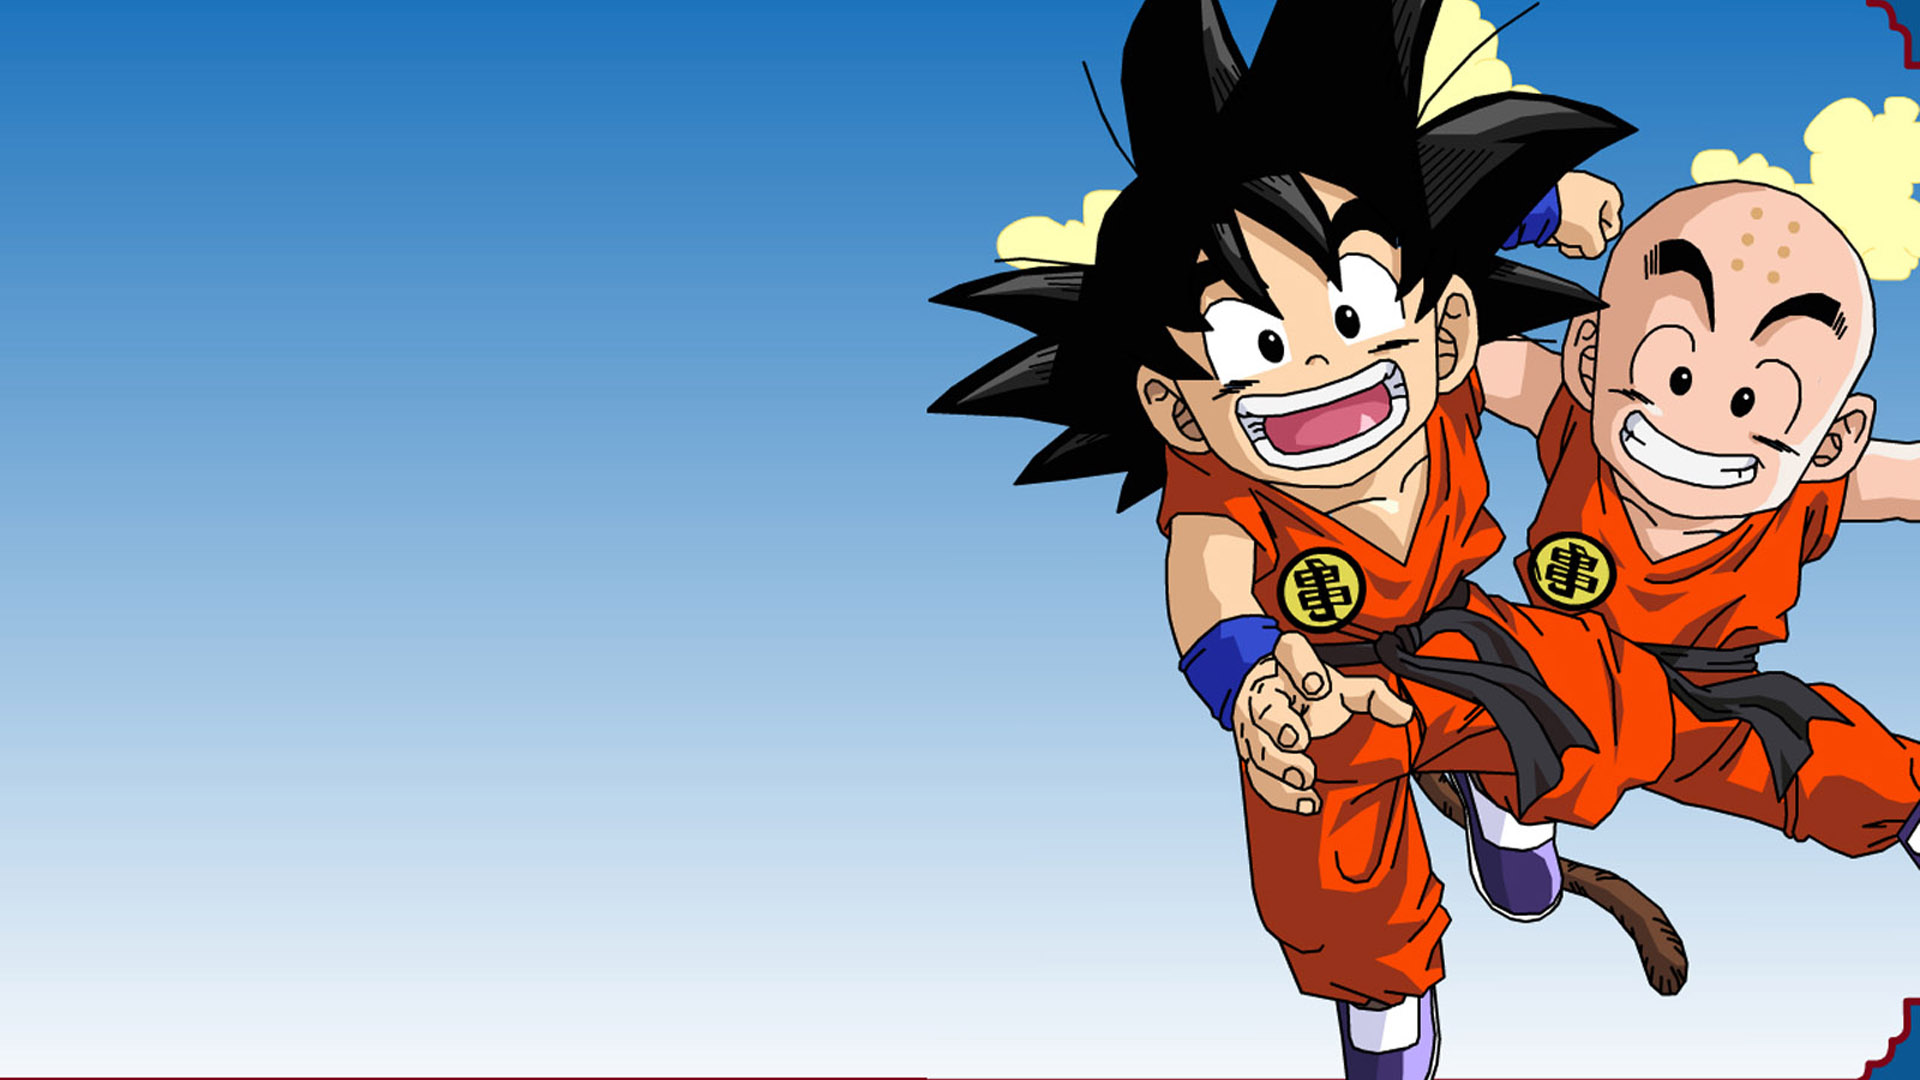 dbz hd wallpaper 1920x1080 wallpapersafari